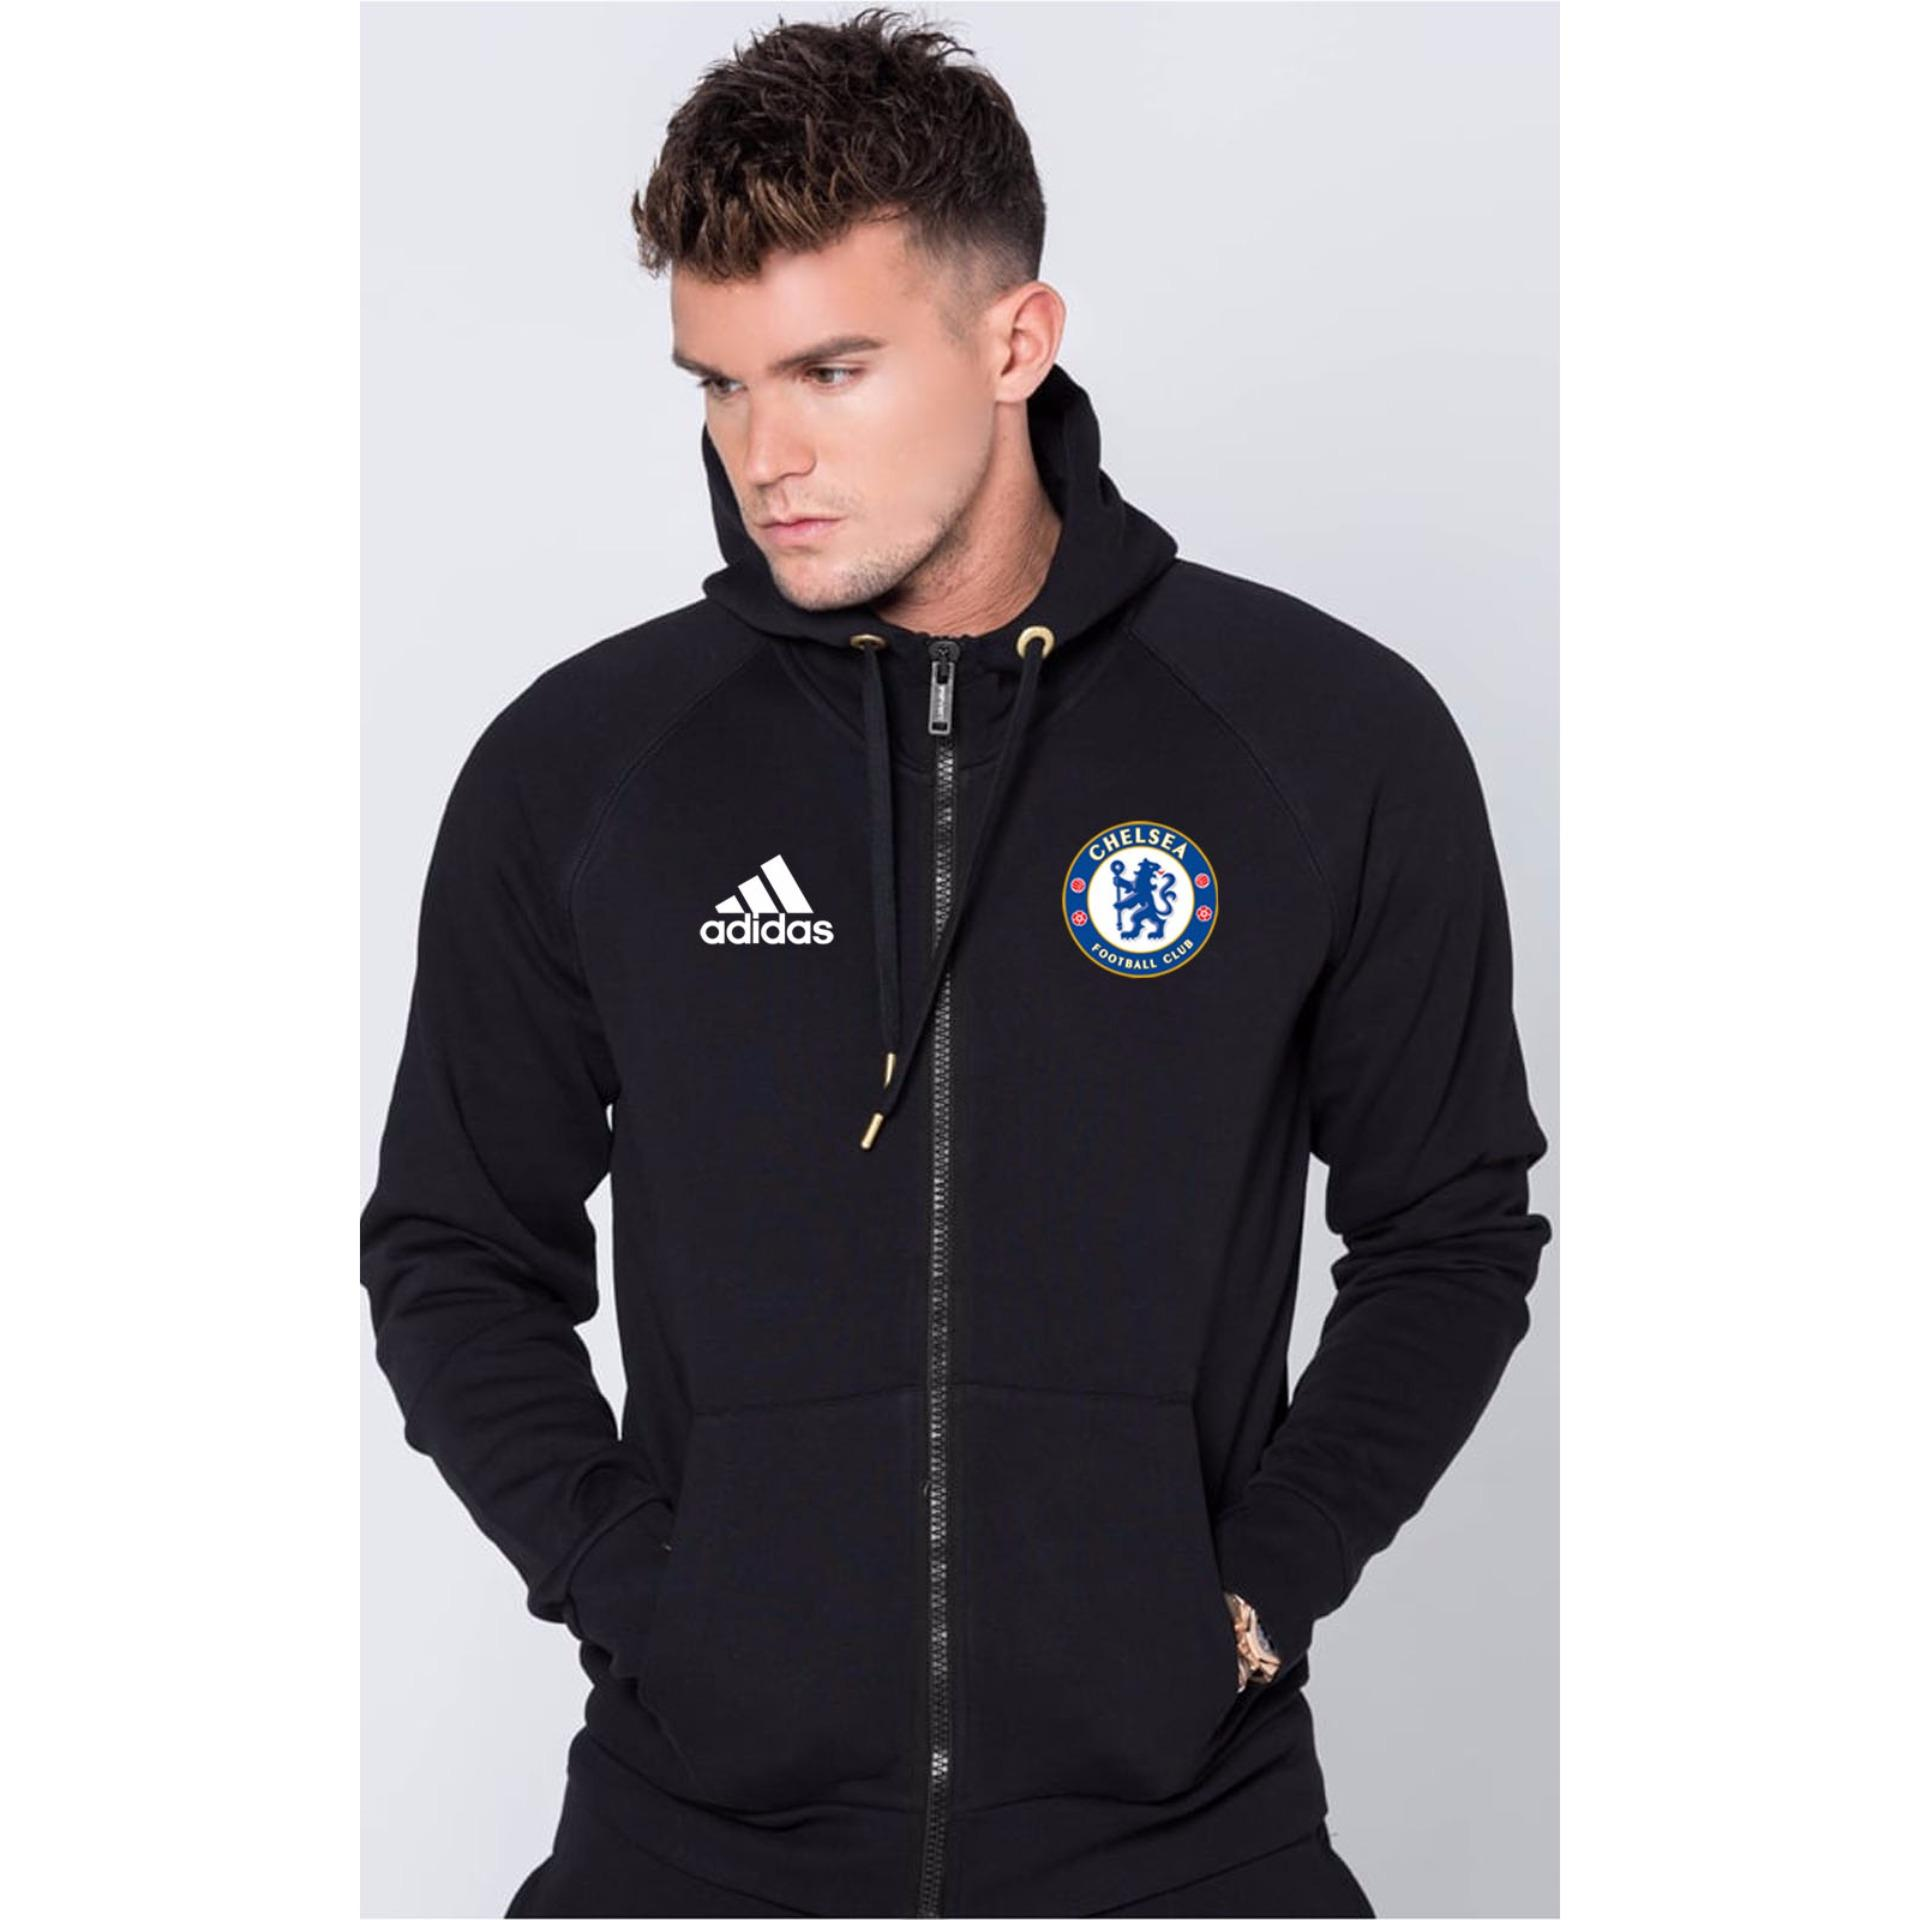 Beli Just Cloth Jaket Zipper The Blues Chelsea Hitam Dengan Kartu Kredit